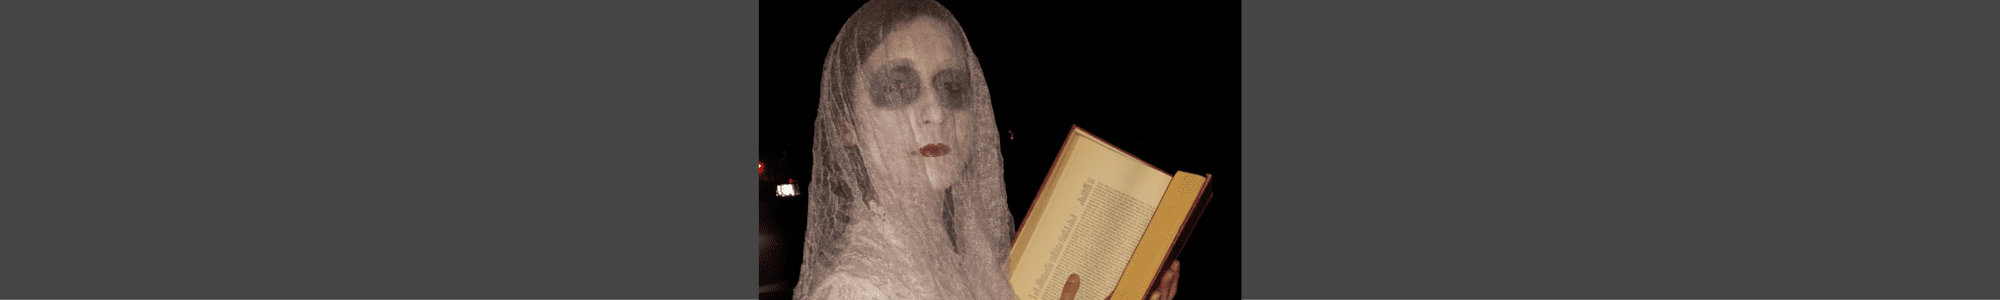 DIY ghost writer costume from tabithadumas.com tells you exactly how to put this simple and inexpensive look together!